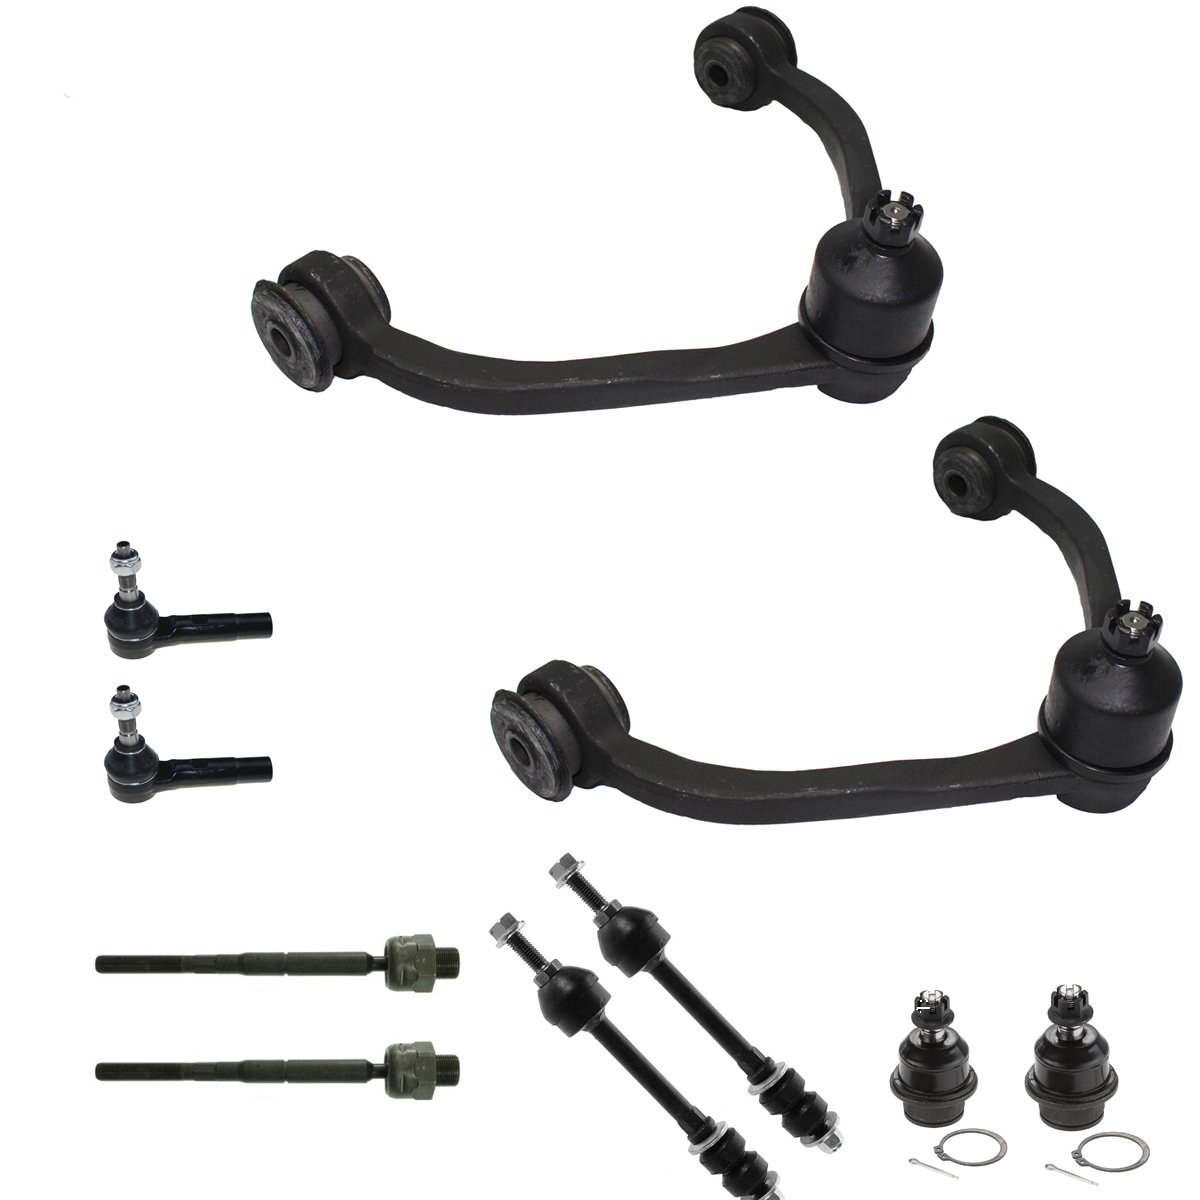 Detroit Axle - New 10 Piece Complete Upper Control Arm Suspension Kit For Dodge Dakota and Mitsubishi Raider